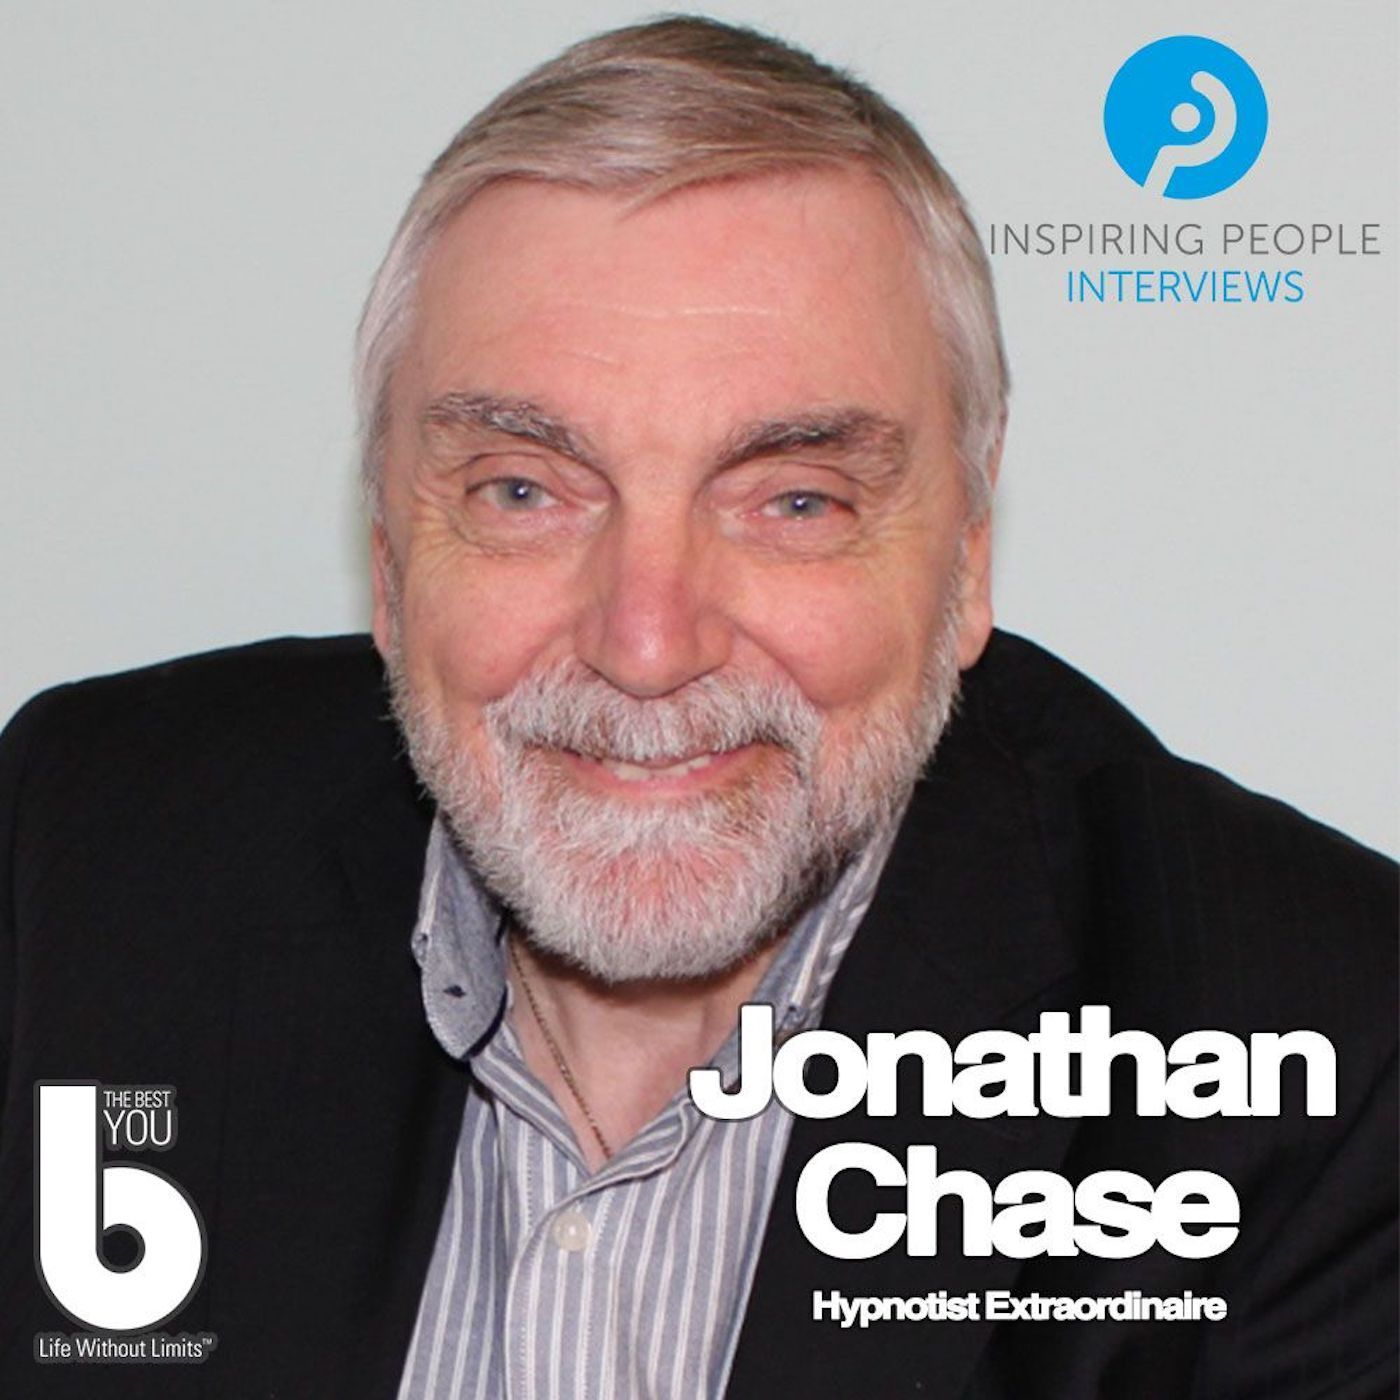 Listen to Episode #95: Jonathan Chase